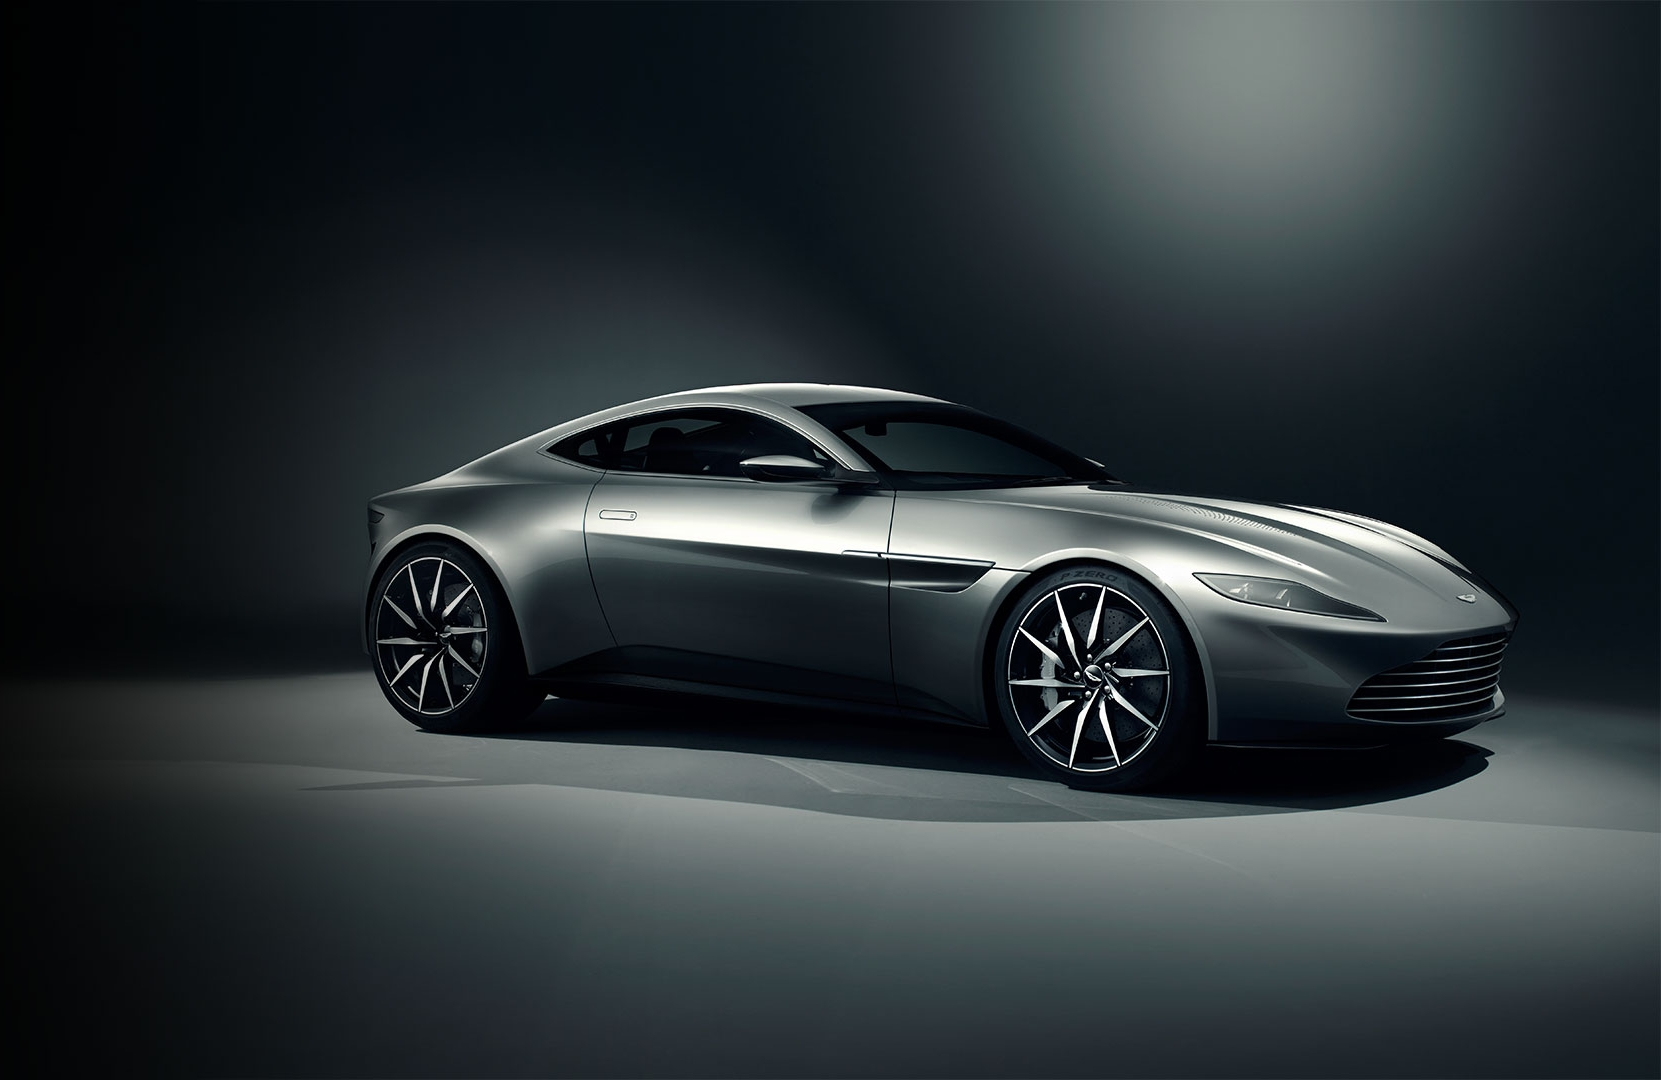 Aston Martin DB10 - automobil - James Bond